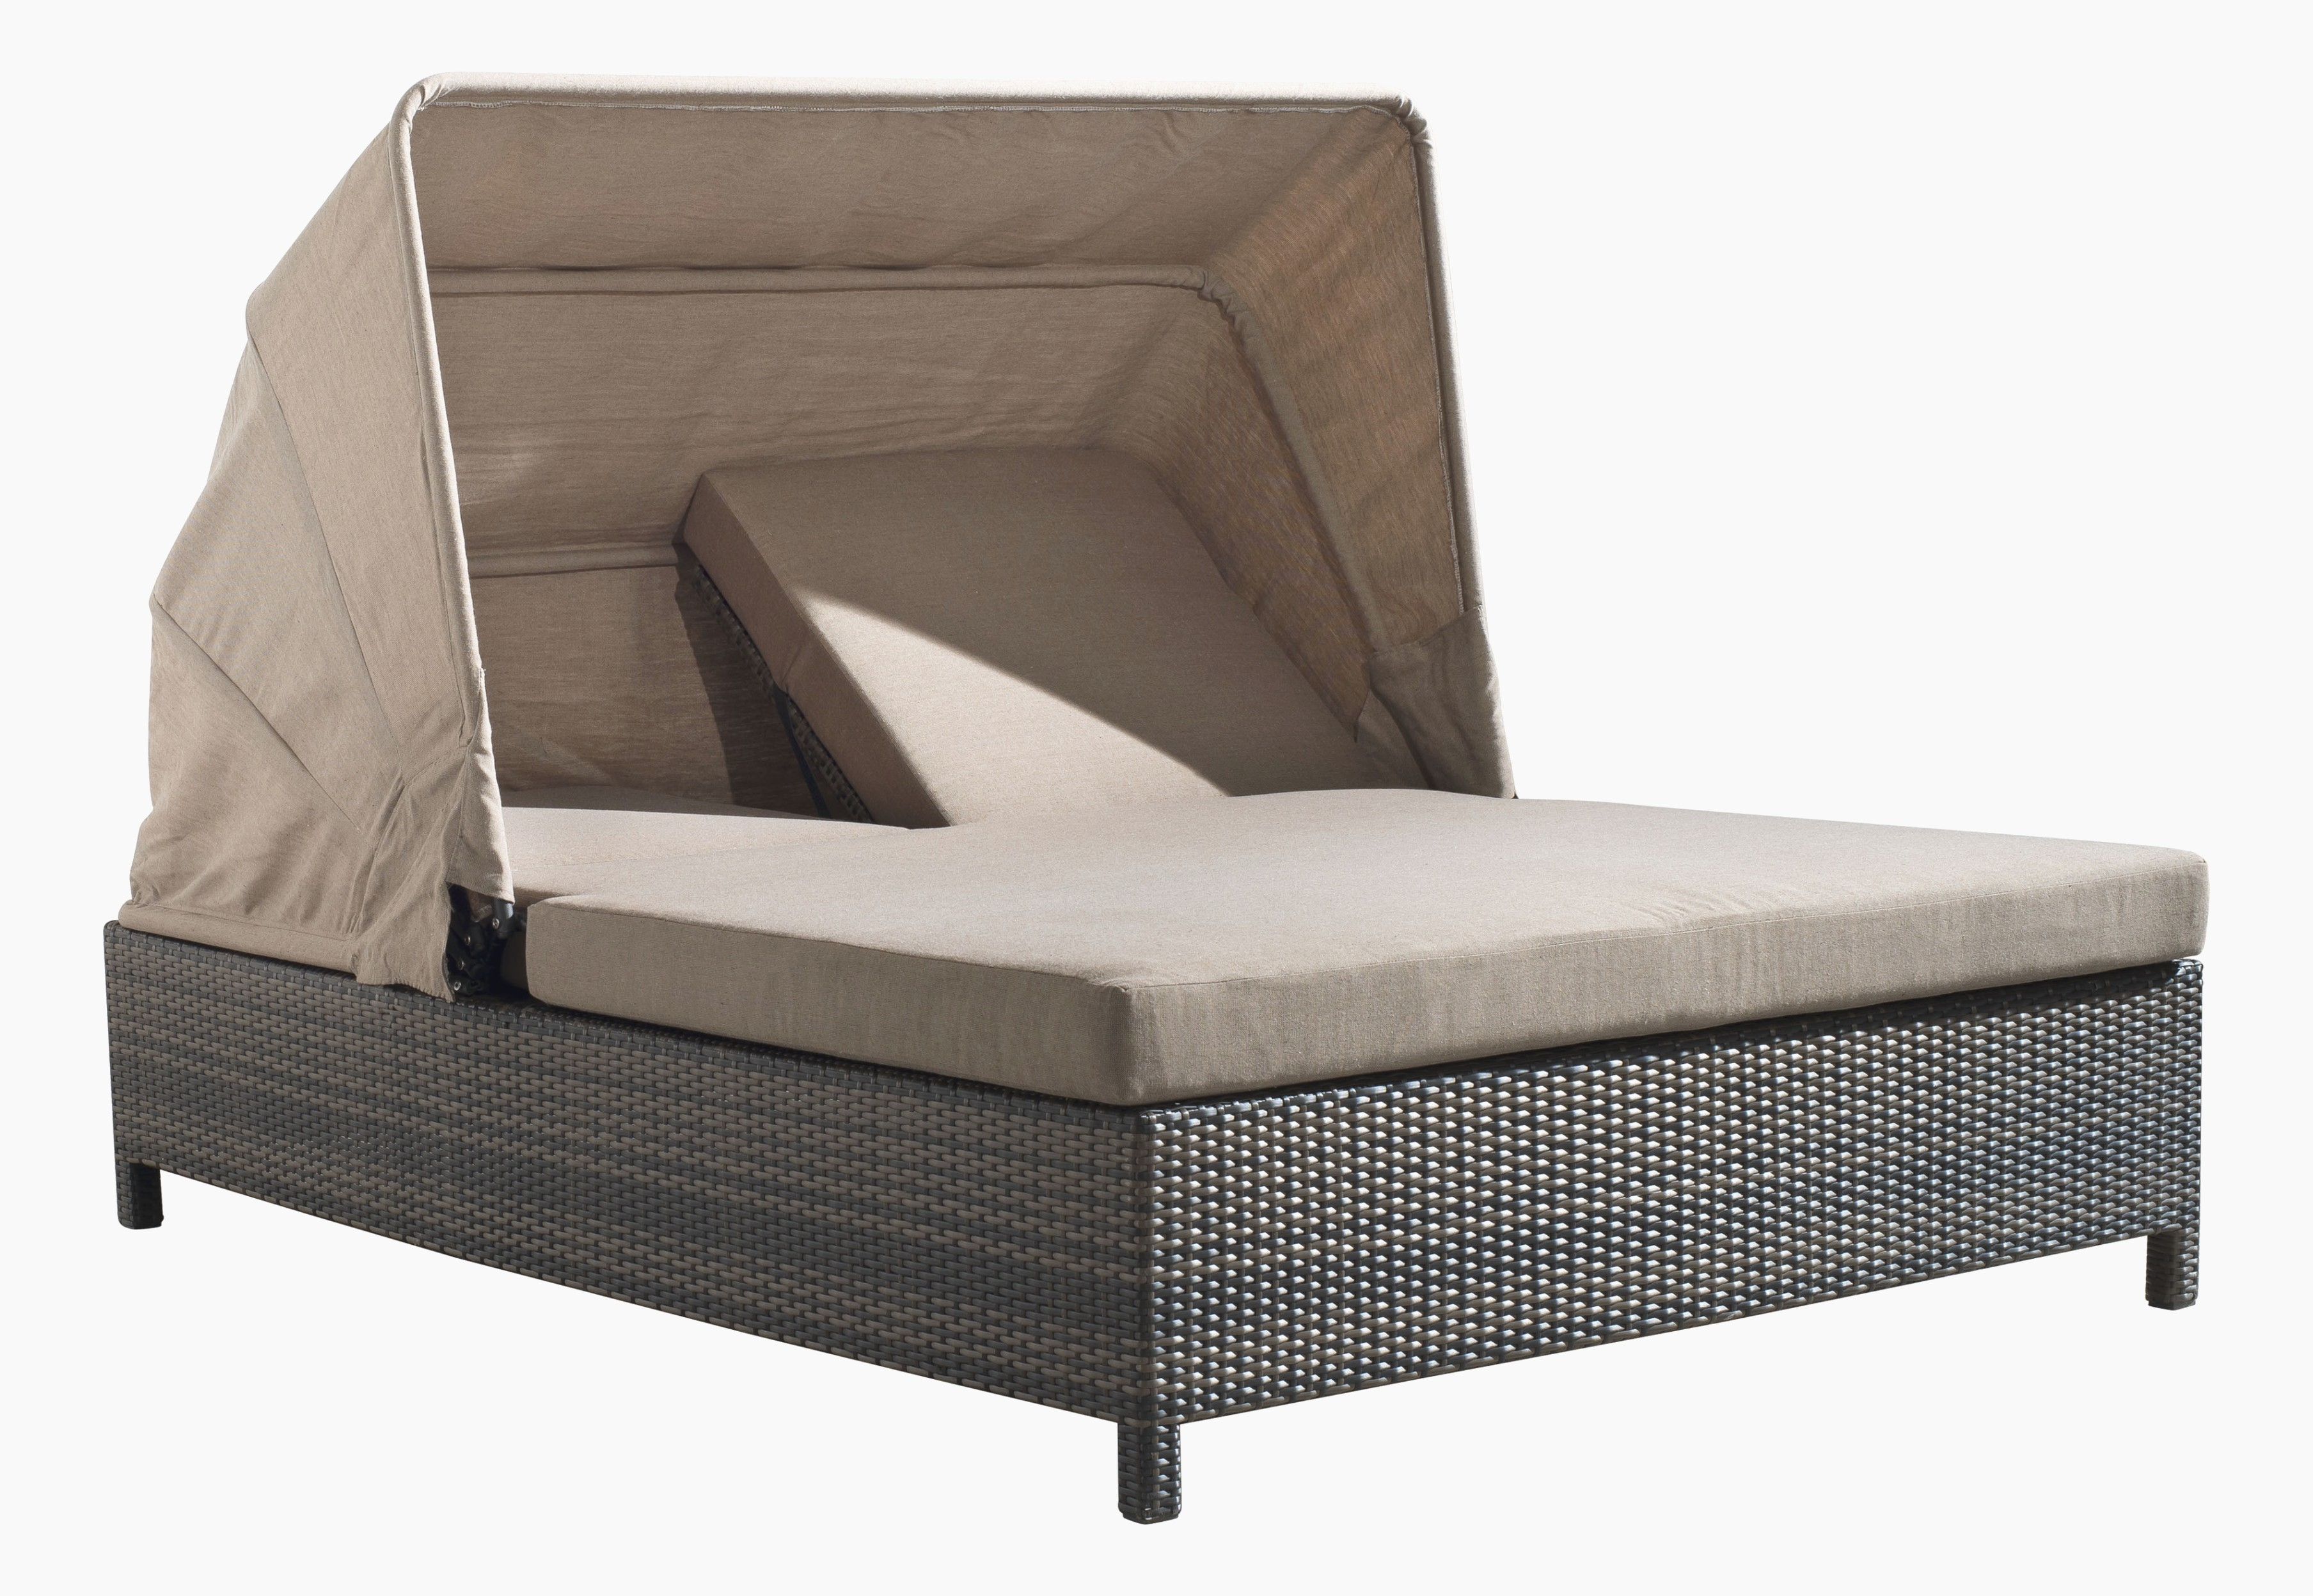 2018 Kidkraft Double Chaise Lounges Regarding Génial Double Chaise Lounge (View 2 of 15)